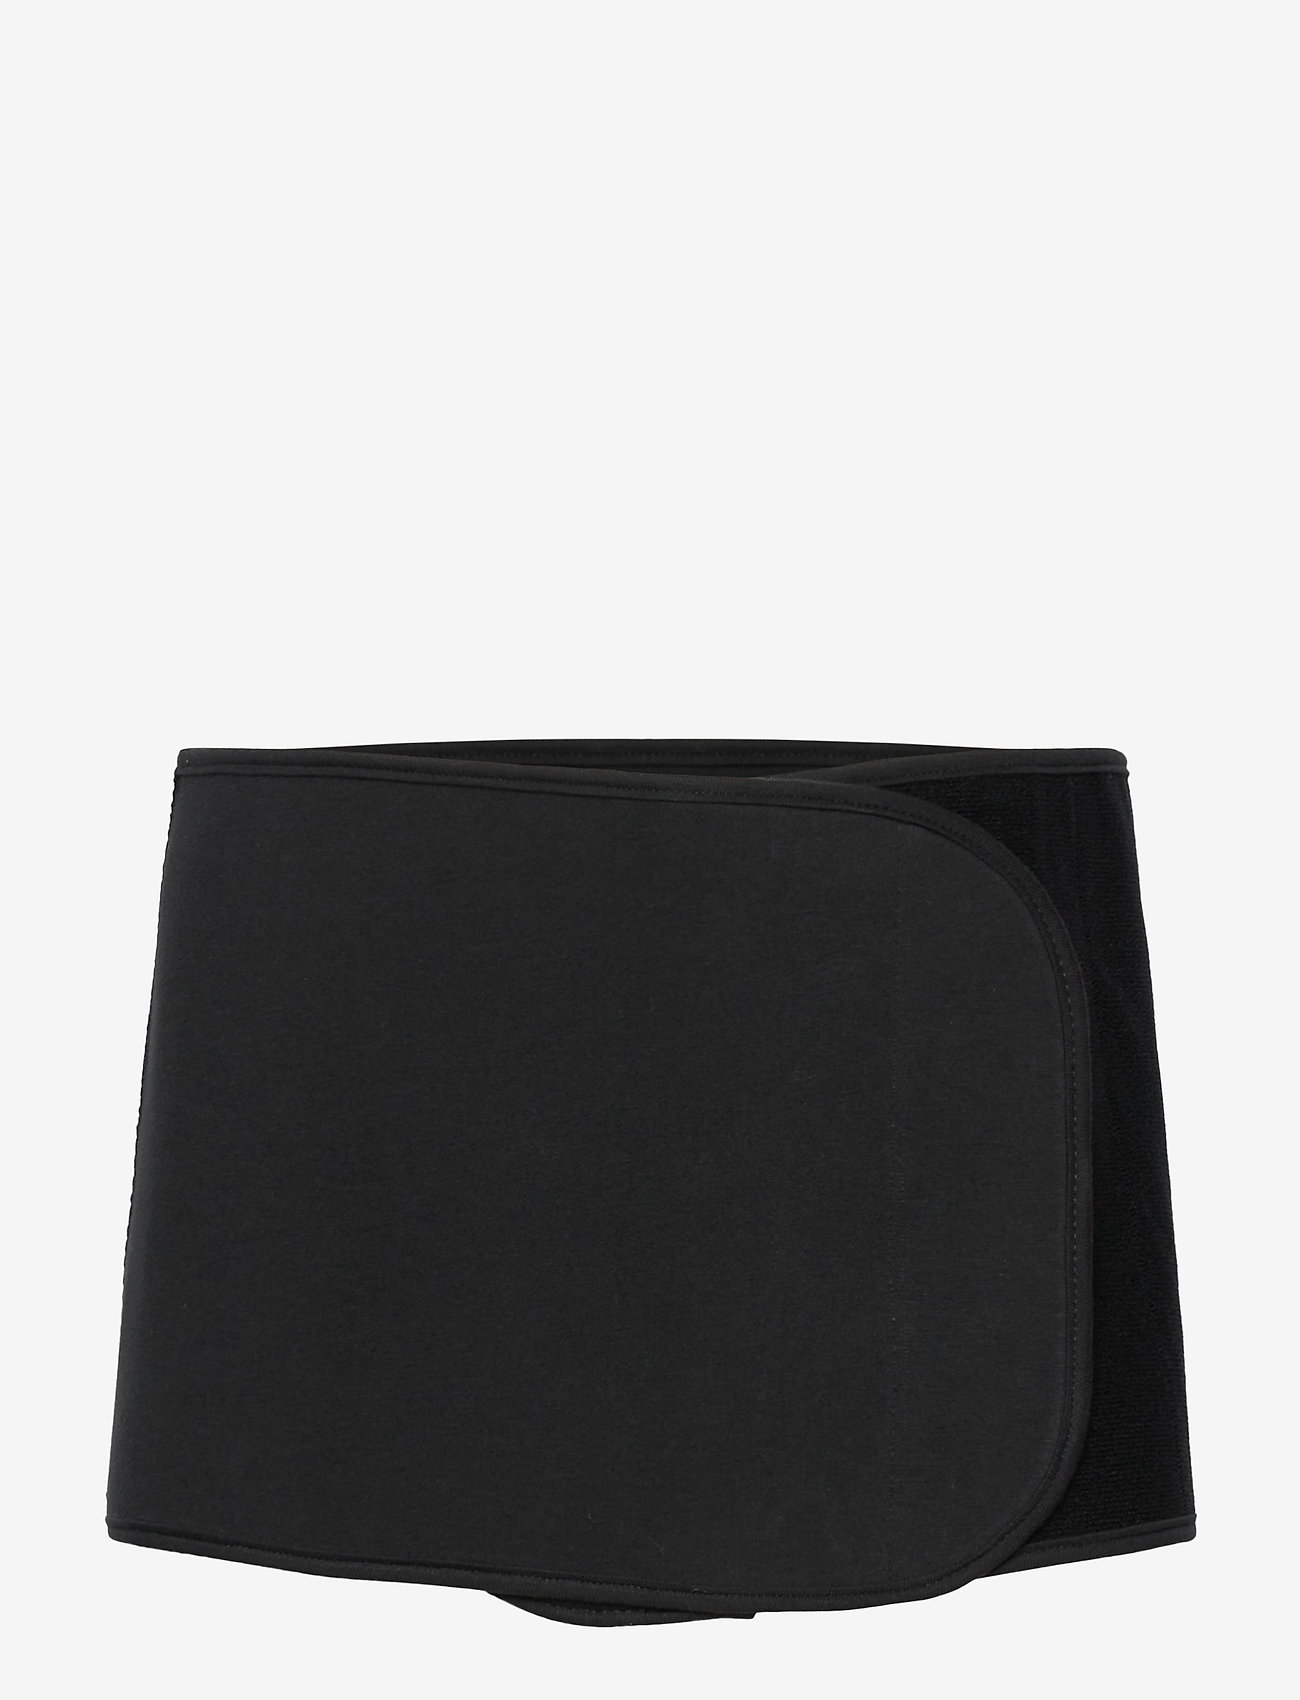 Carriwell - Post Birth Belly Binder - tops - black - 1